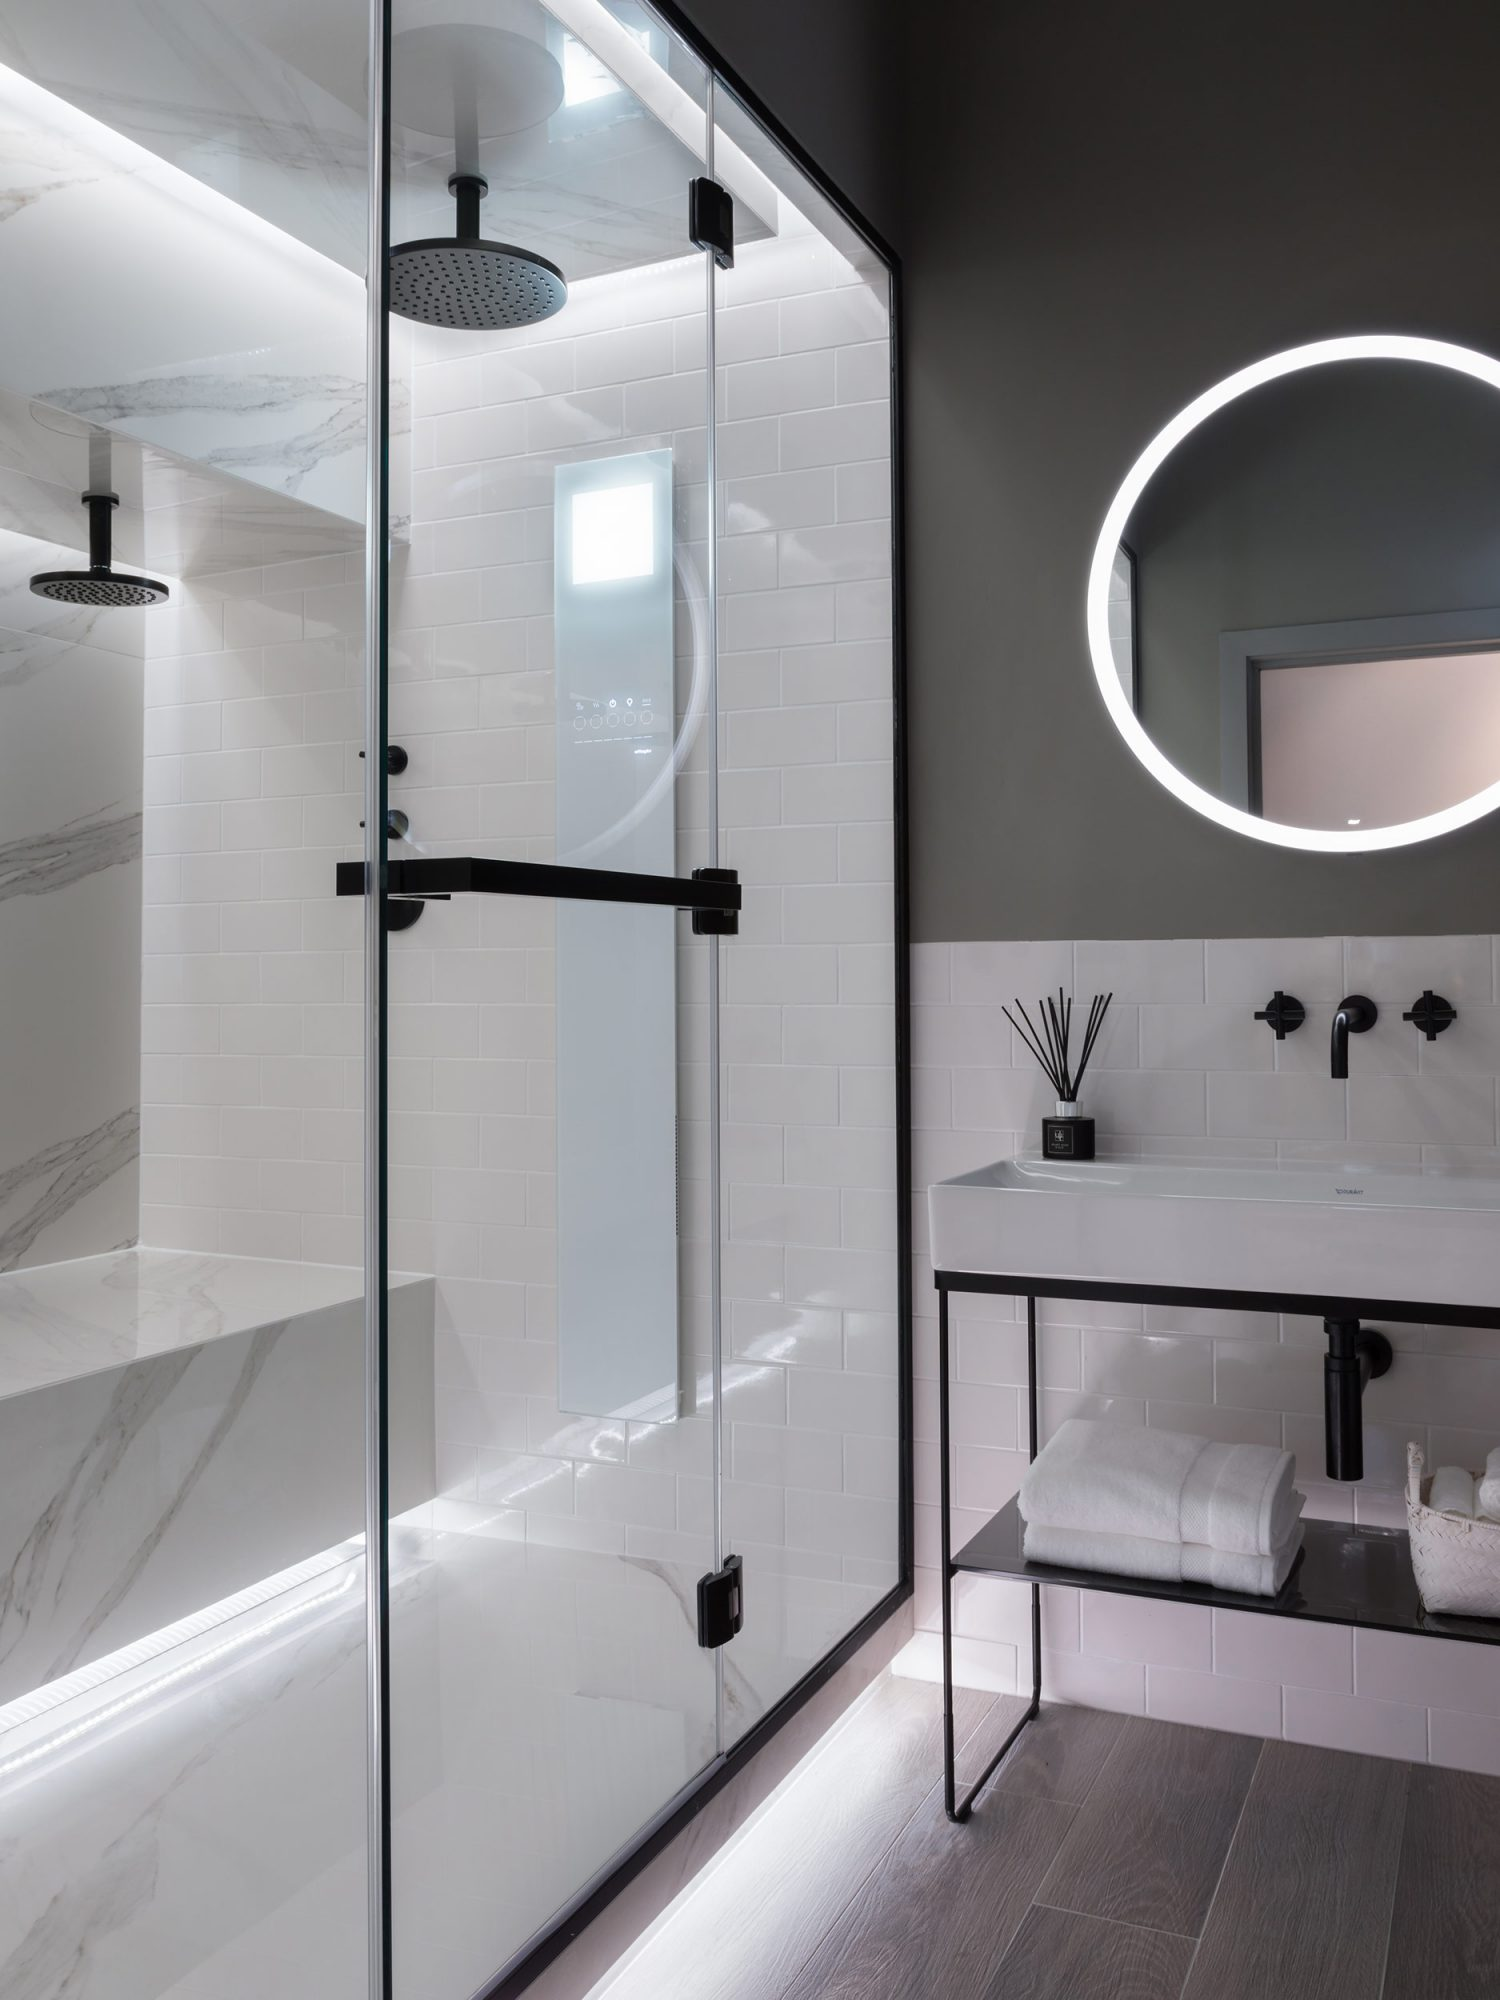 West One Bathrooms Small Size Premium Spa Concept SSPS by Sieger Design 4a